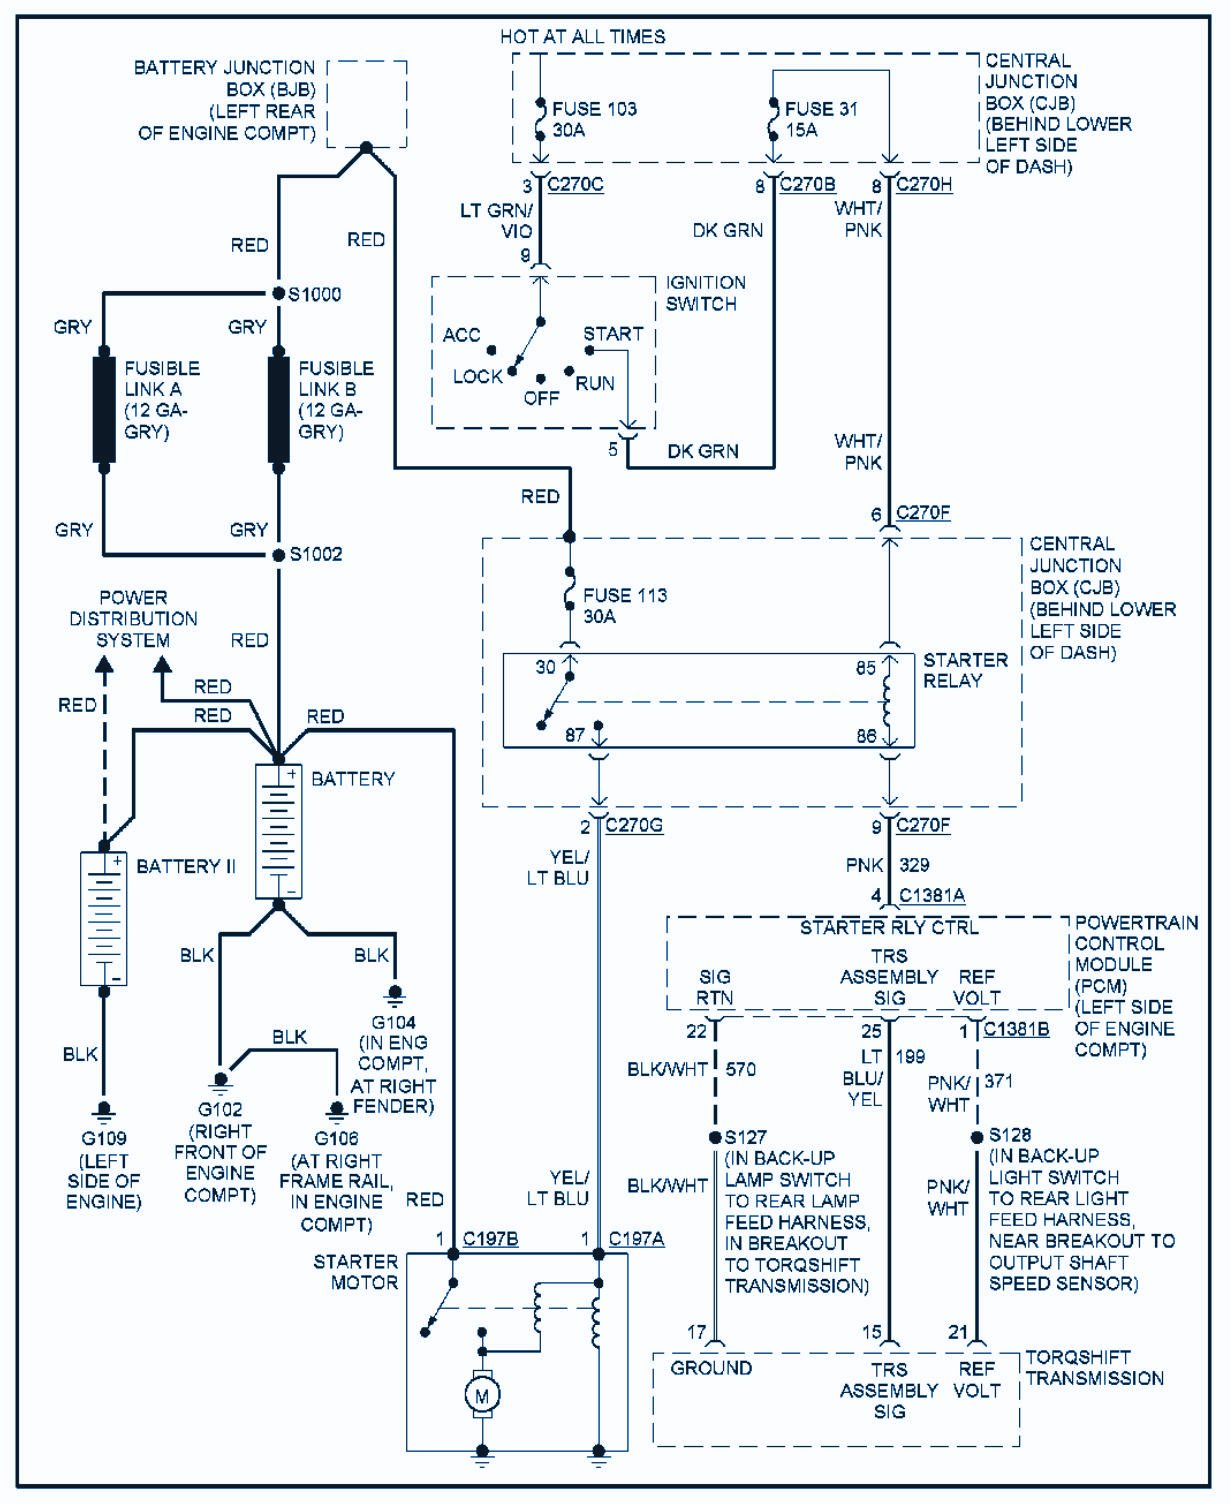 2008 Ford F-350 DIESEL Wiring Diagram | Auto Wiring Diagrams